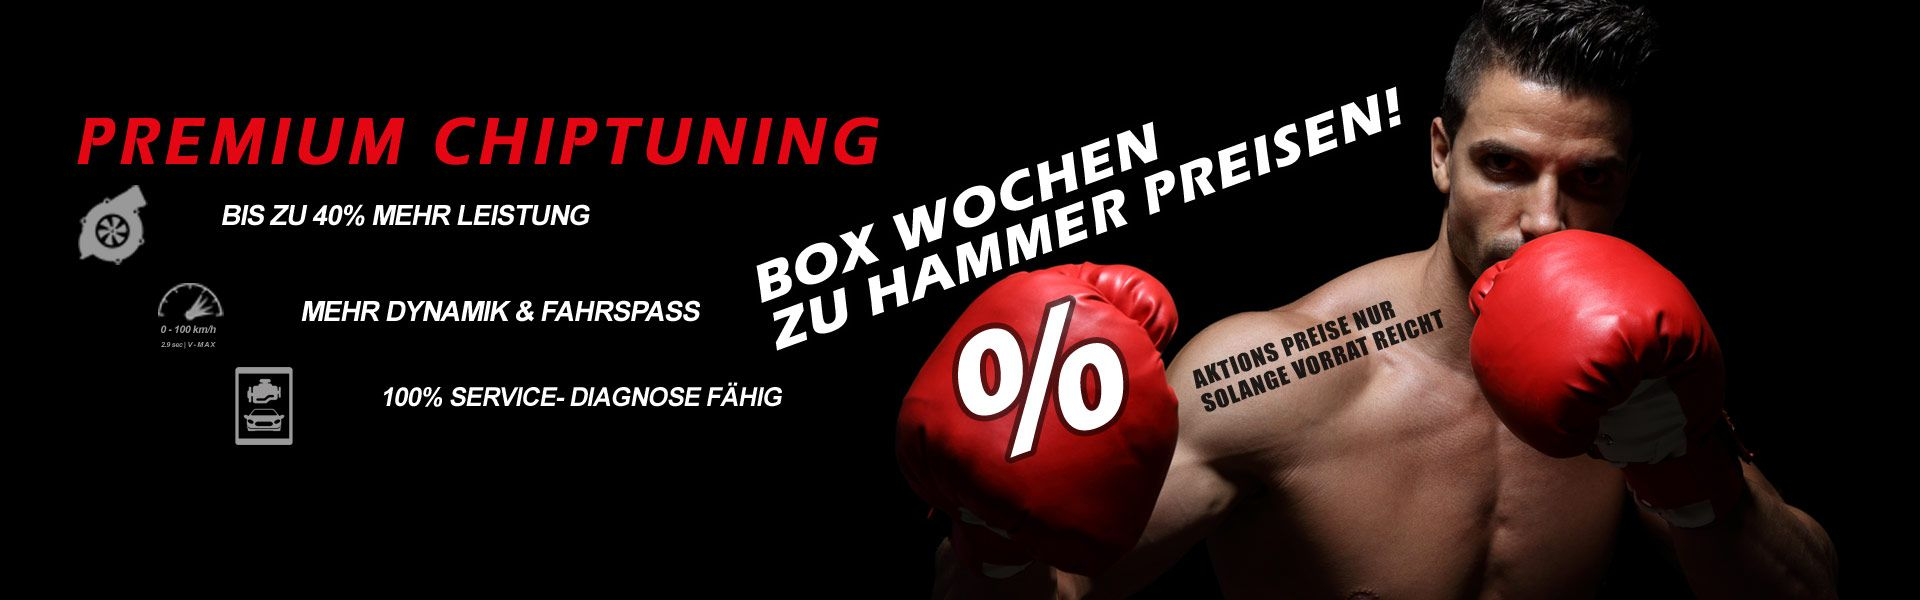 Premium Chip Tuning | BOX weeks at hammer prices